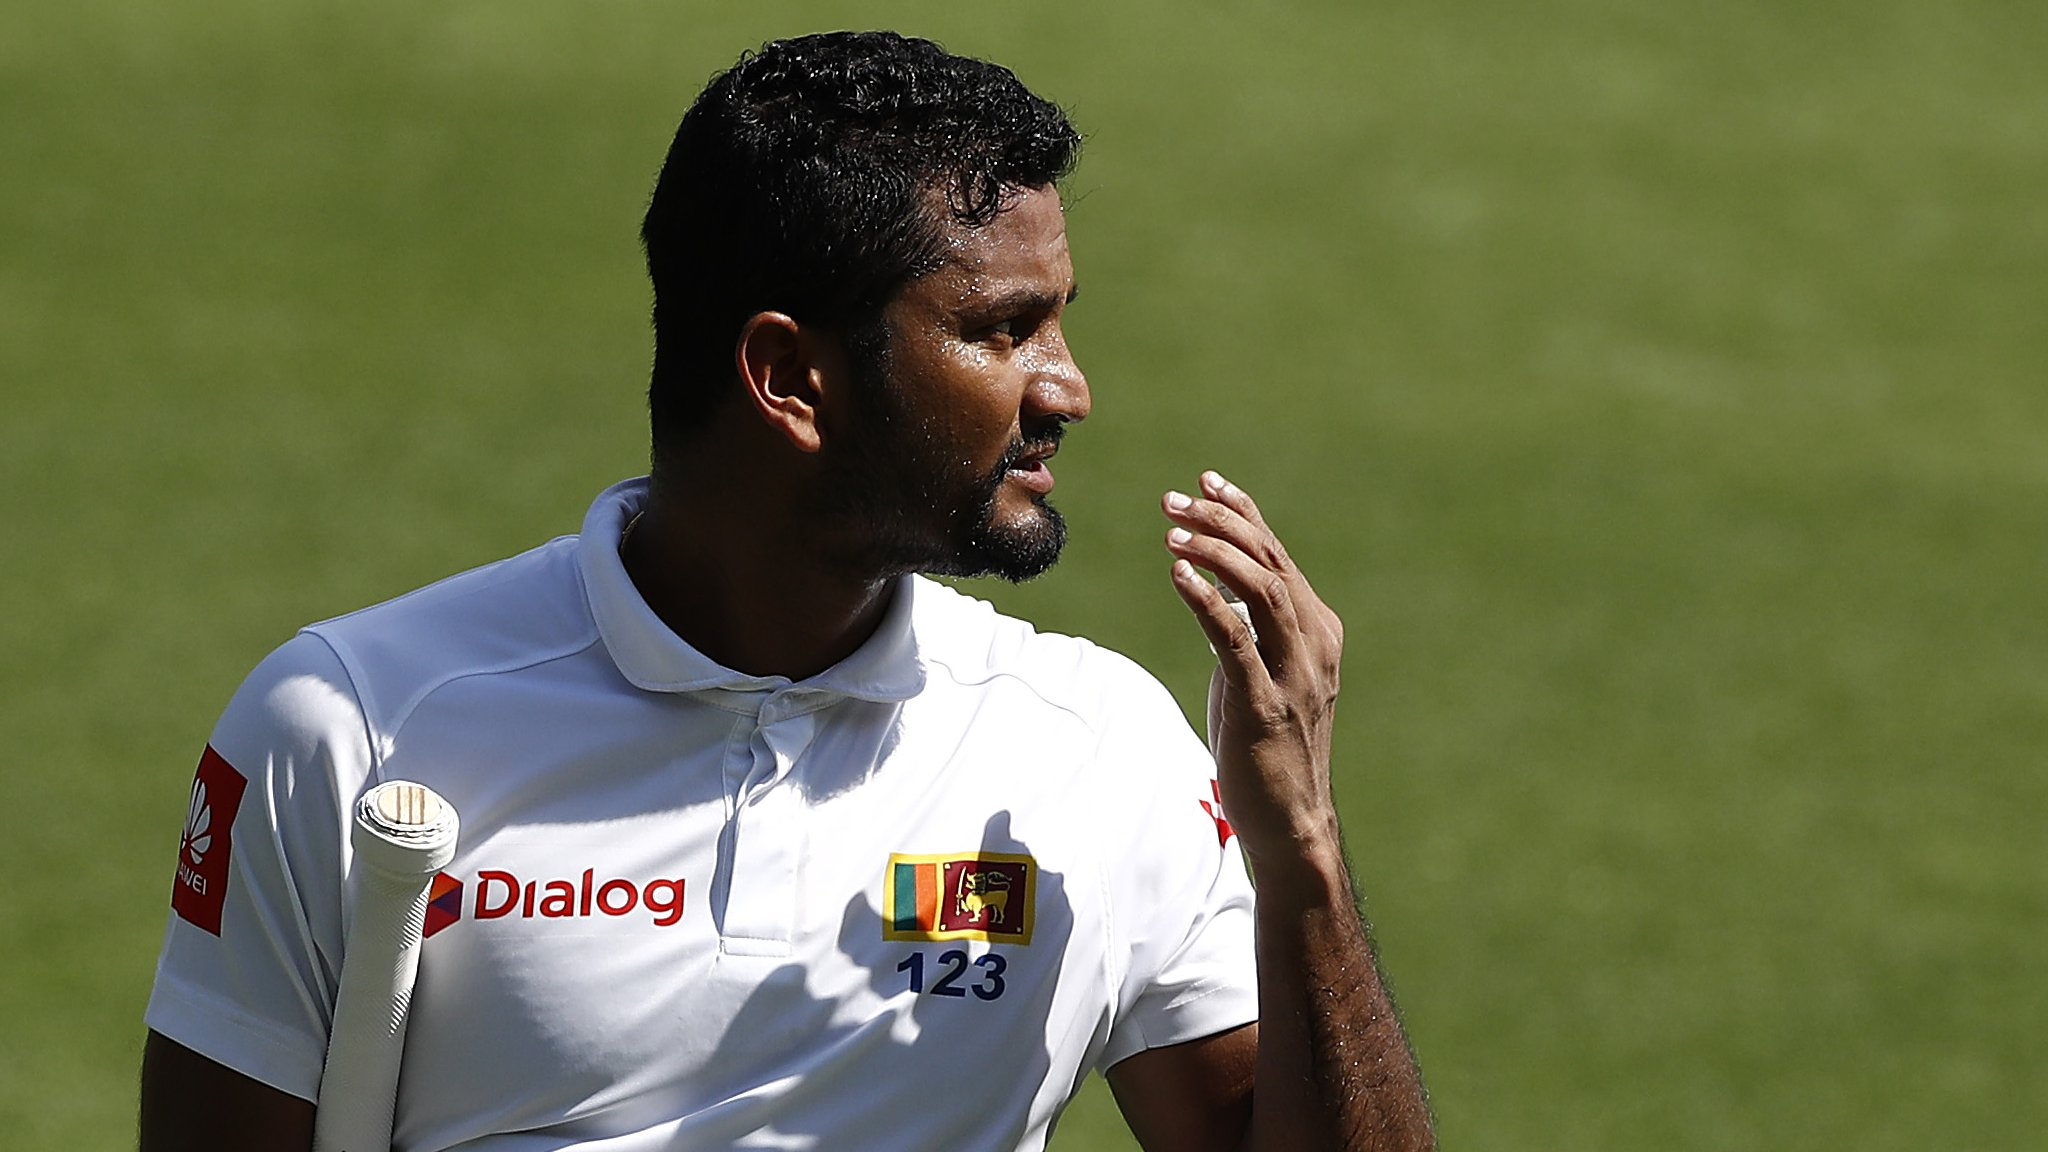 Hampshire 'can fight without Karunaratne' - Birrell